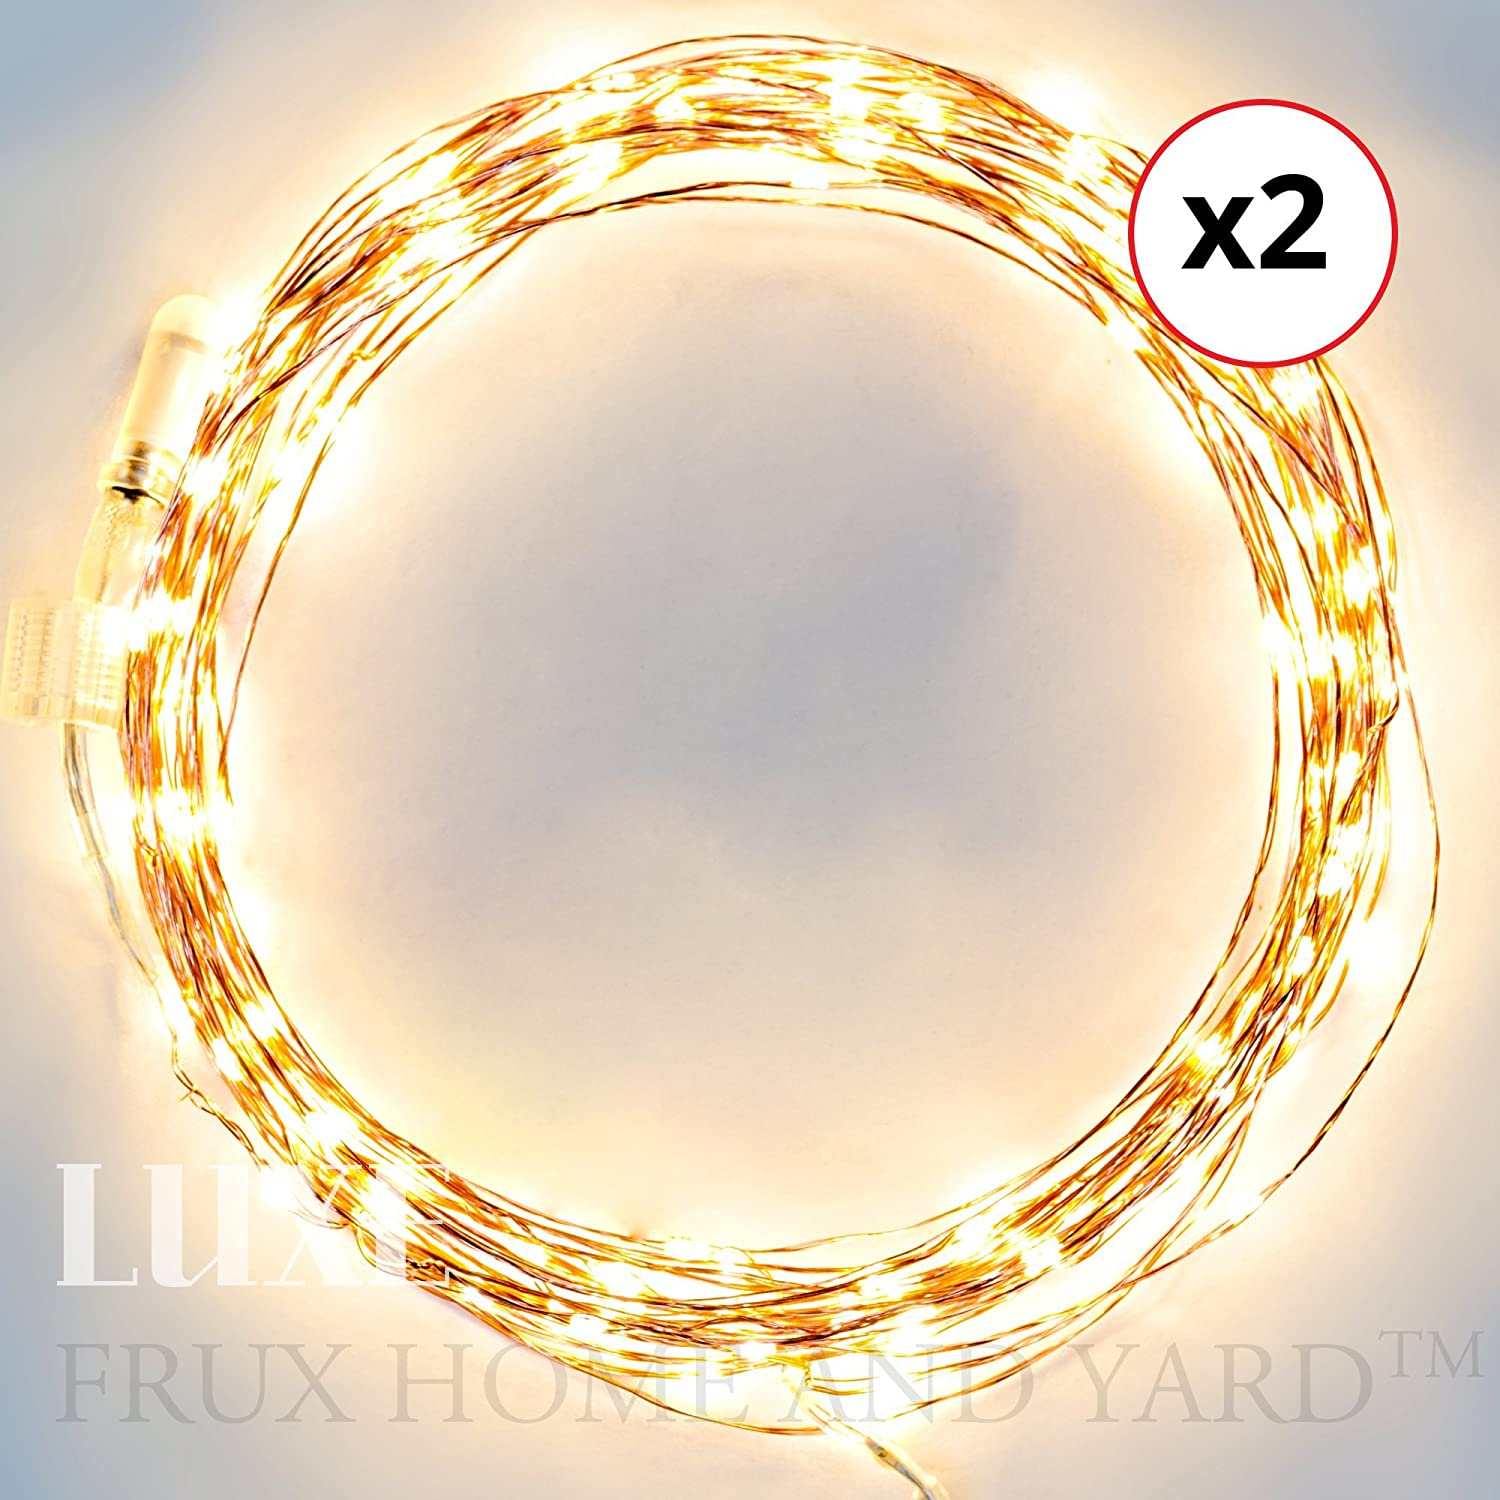 EXTENSIONS for Luxe EXTENDABLE Fairy Star Light Set - 2 x 39ft extensions Warm White LED Copper Wire Indoor - Outdoor ONLY FOR USE WITH Luxe EXTENDABLE Fairy Star Light Set by Frux Home and Yard